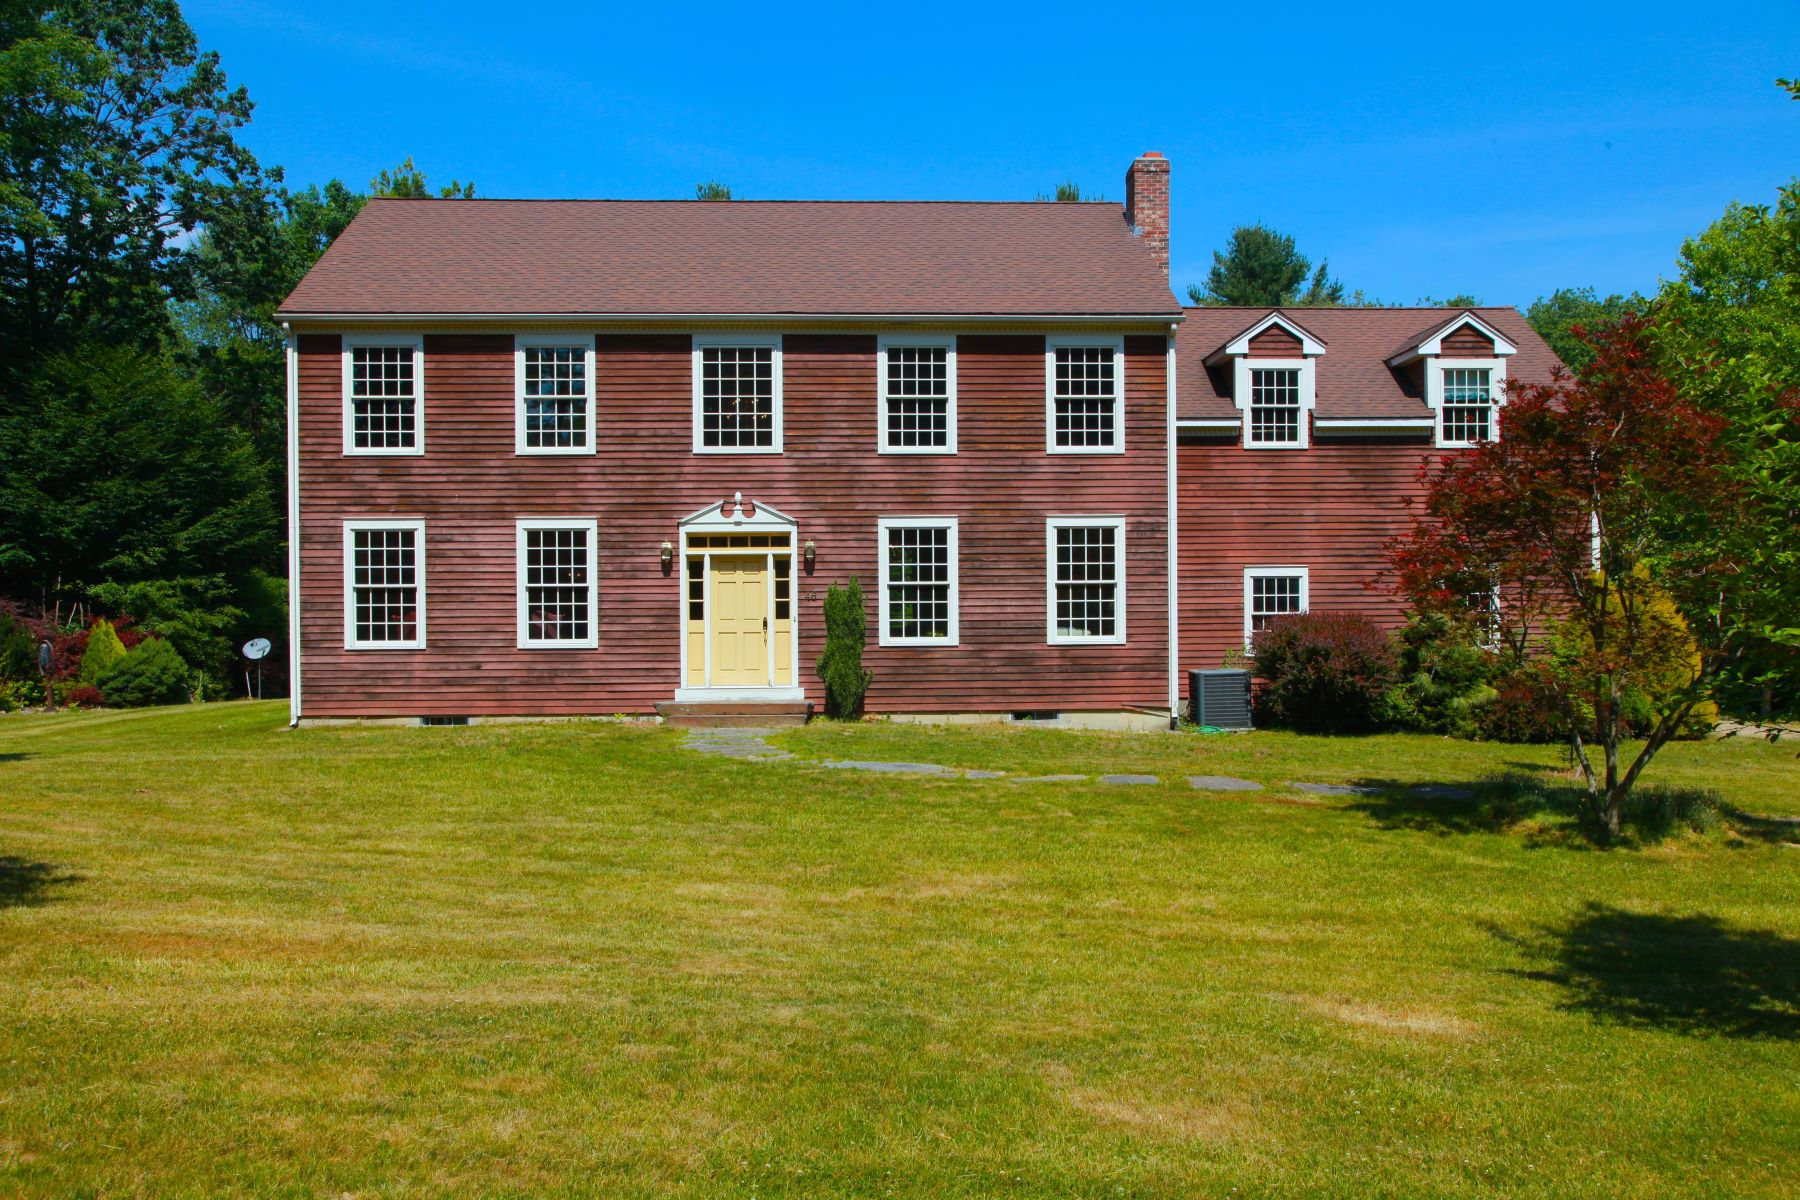 Casa Unifamiliar por un Venta en Impeccable Newer Colonial on 9+ acres with River Frontage near Northampton and t 46 Stage Rd (2) Chesterfield, Massachusetts 01012 Estados Unidos